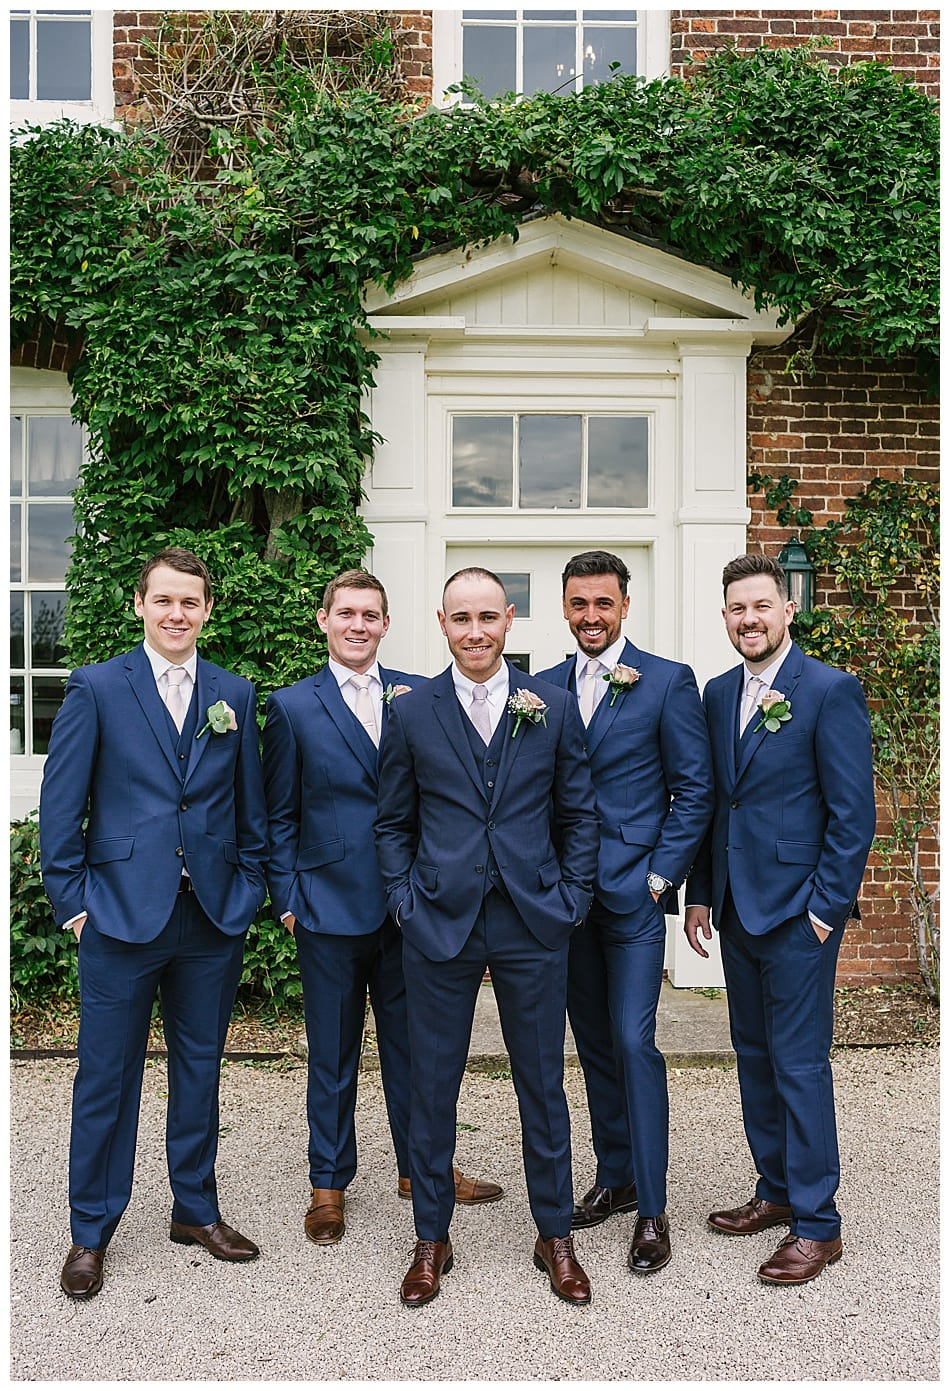 Groom and Groomsmen at Staffordshire wedding